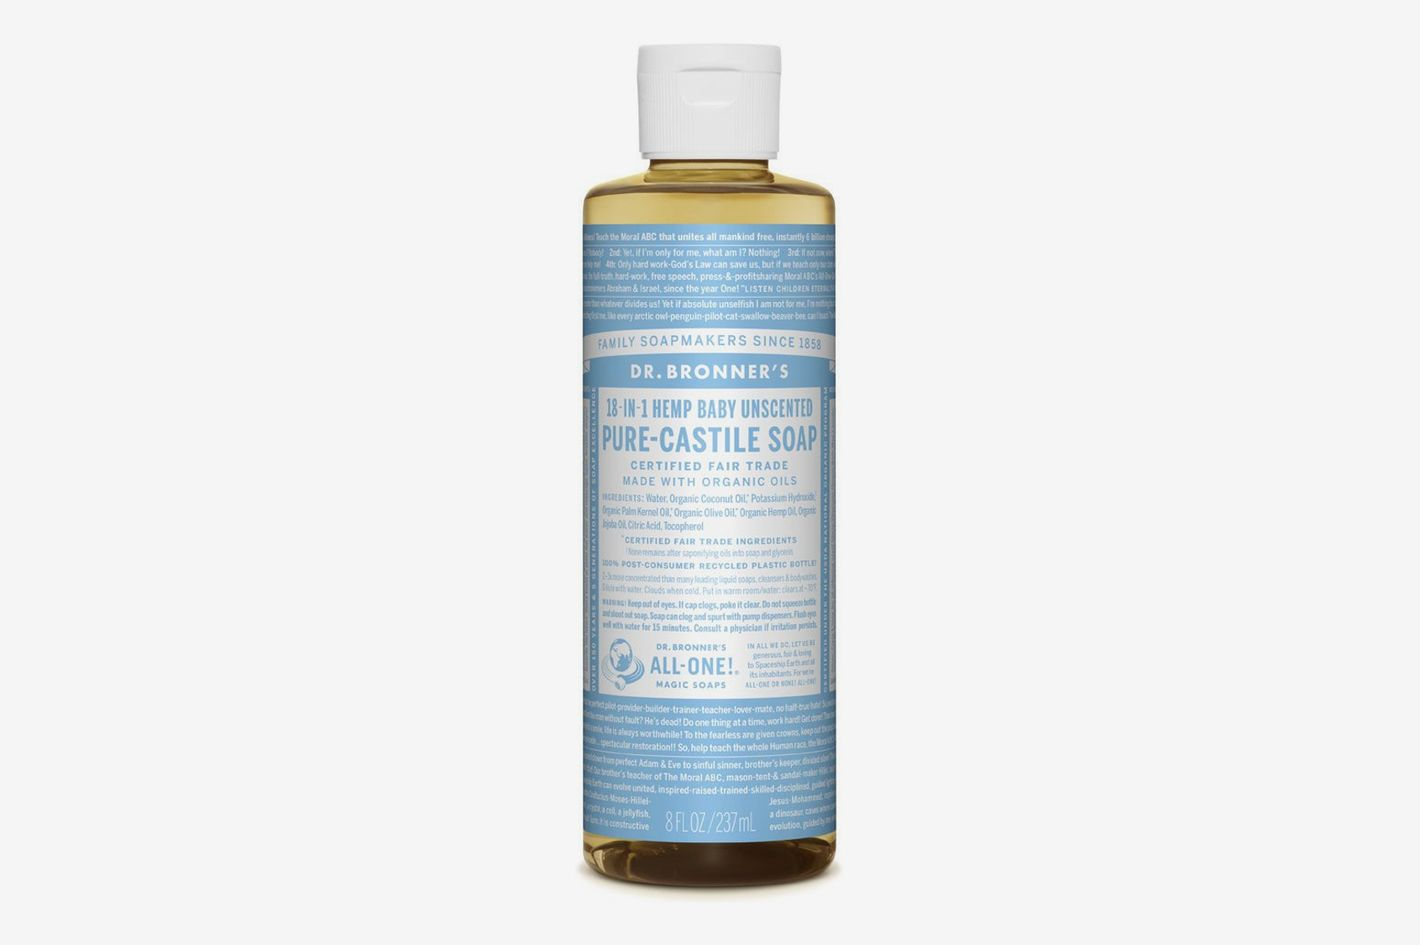 Dr. Bronner's Pure-Castile Liquid Soap, Baby Unscented